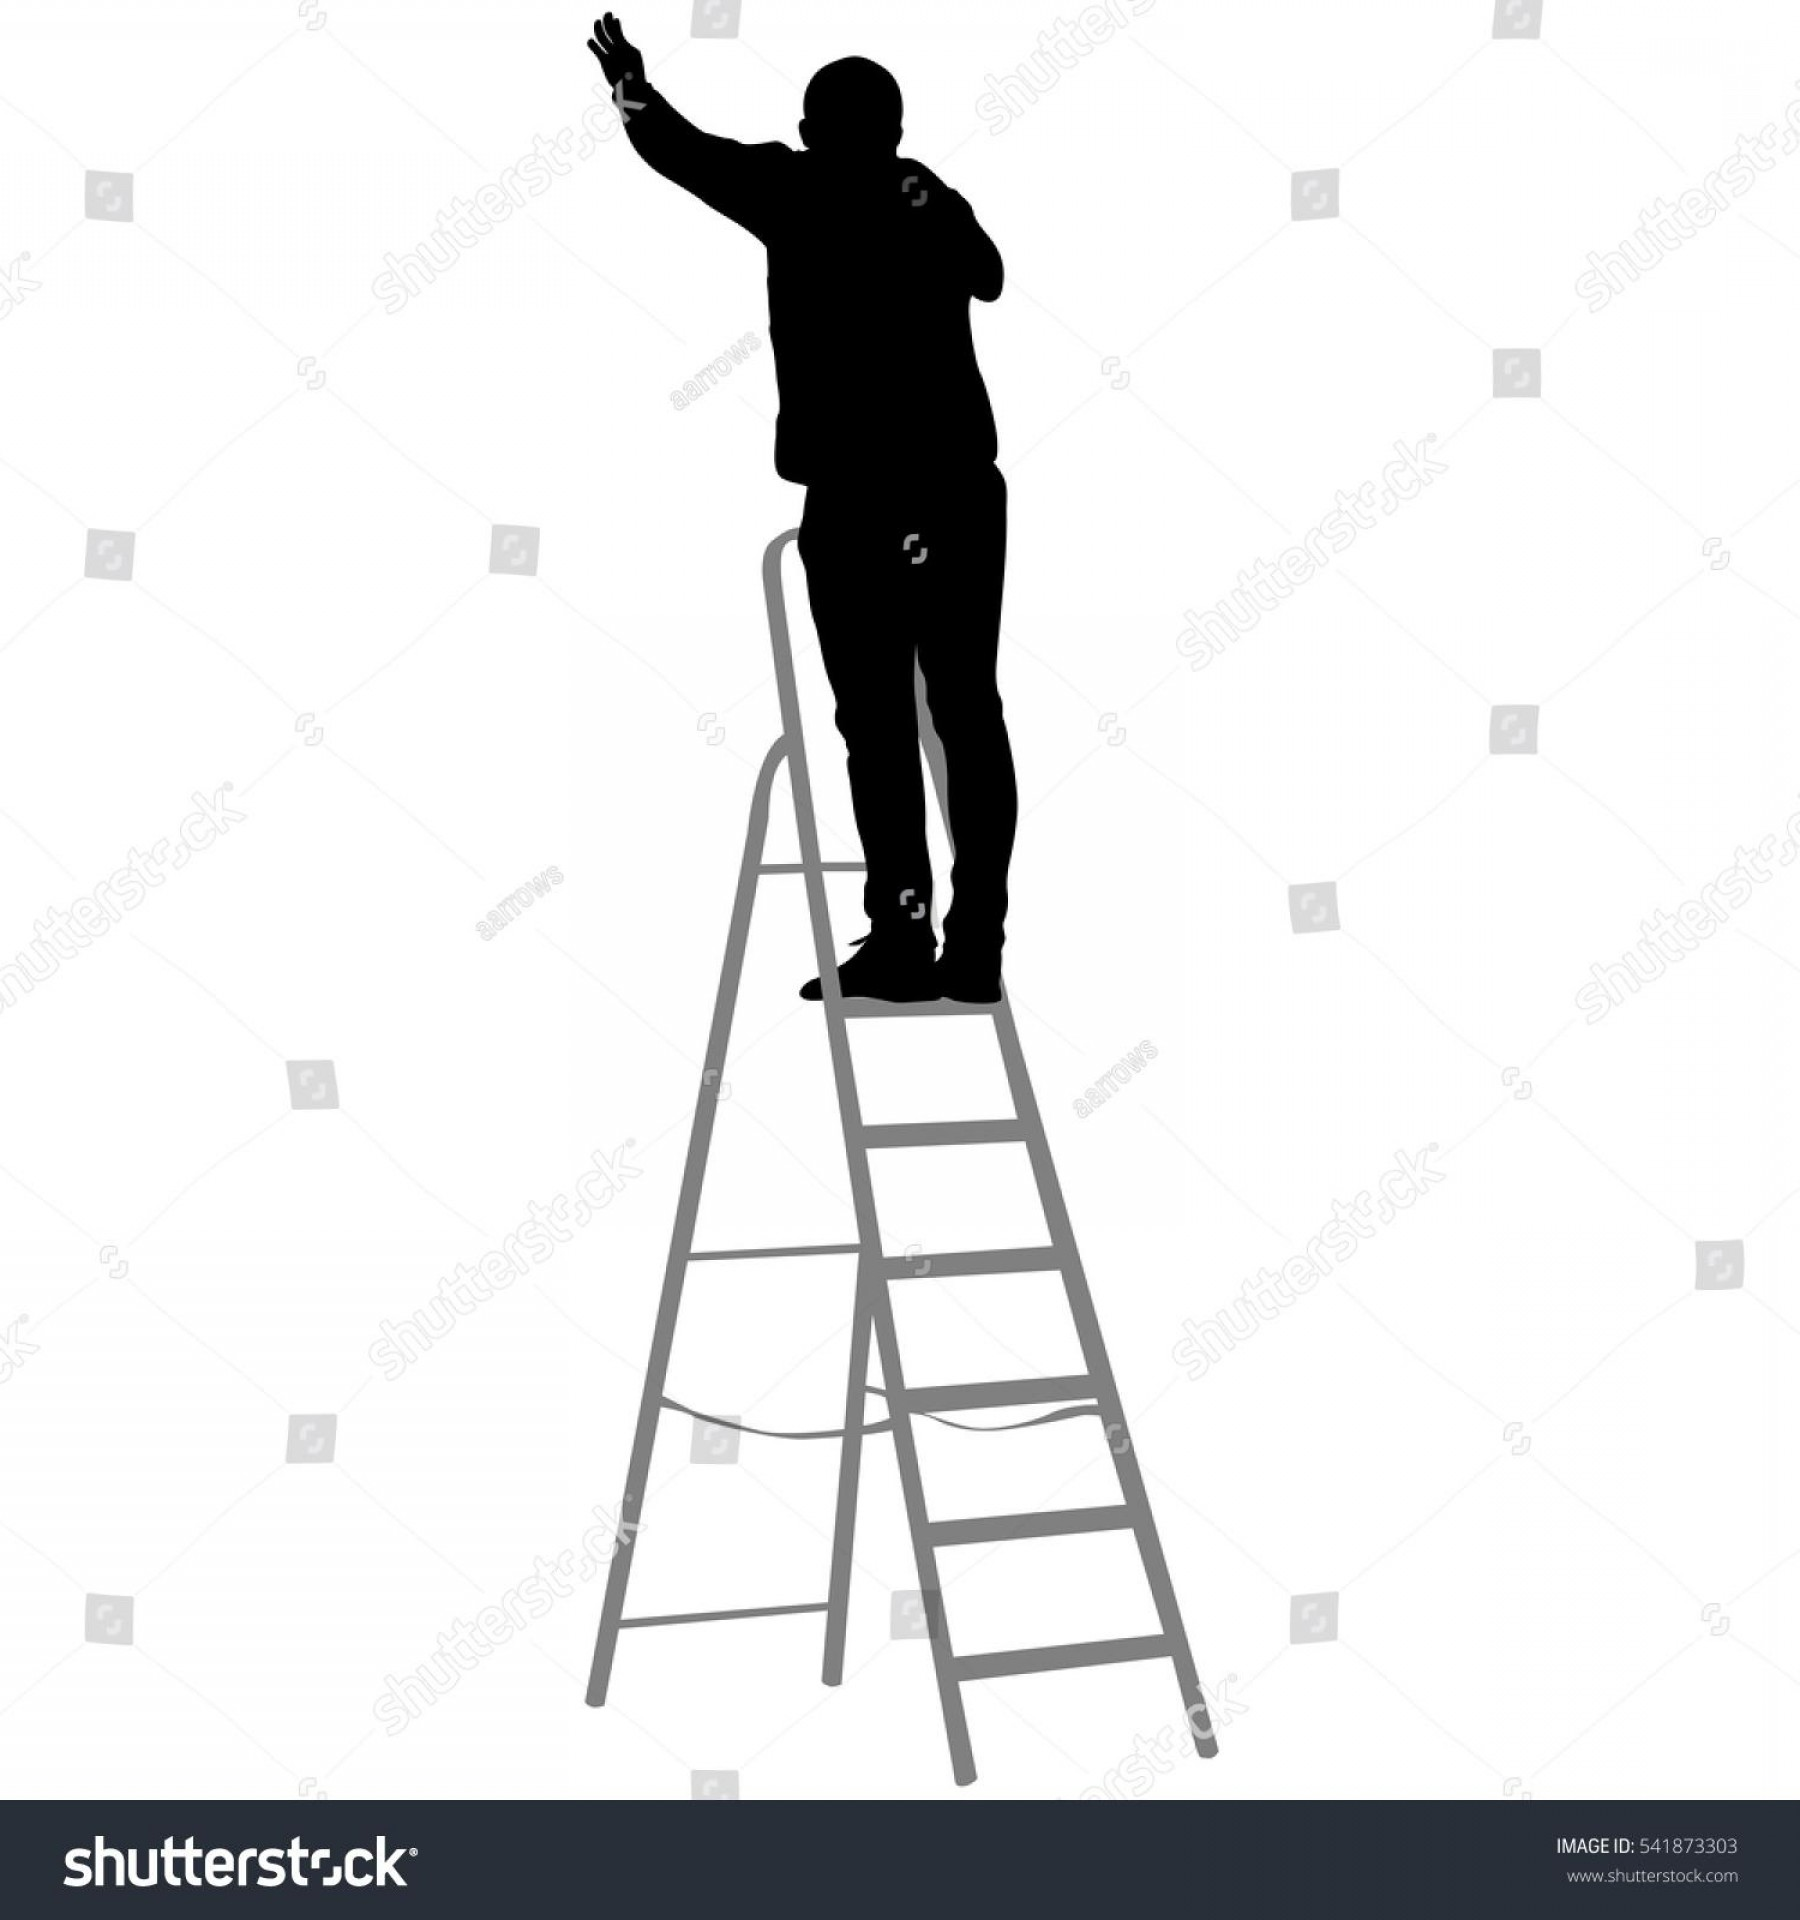 Ladder Silhouette Vector: Best Stock Vector Silhouette Worker Climbing The Ladder Illustration Pictures